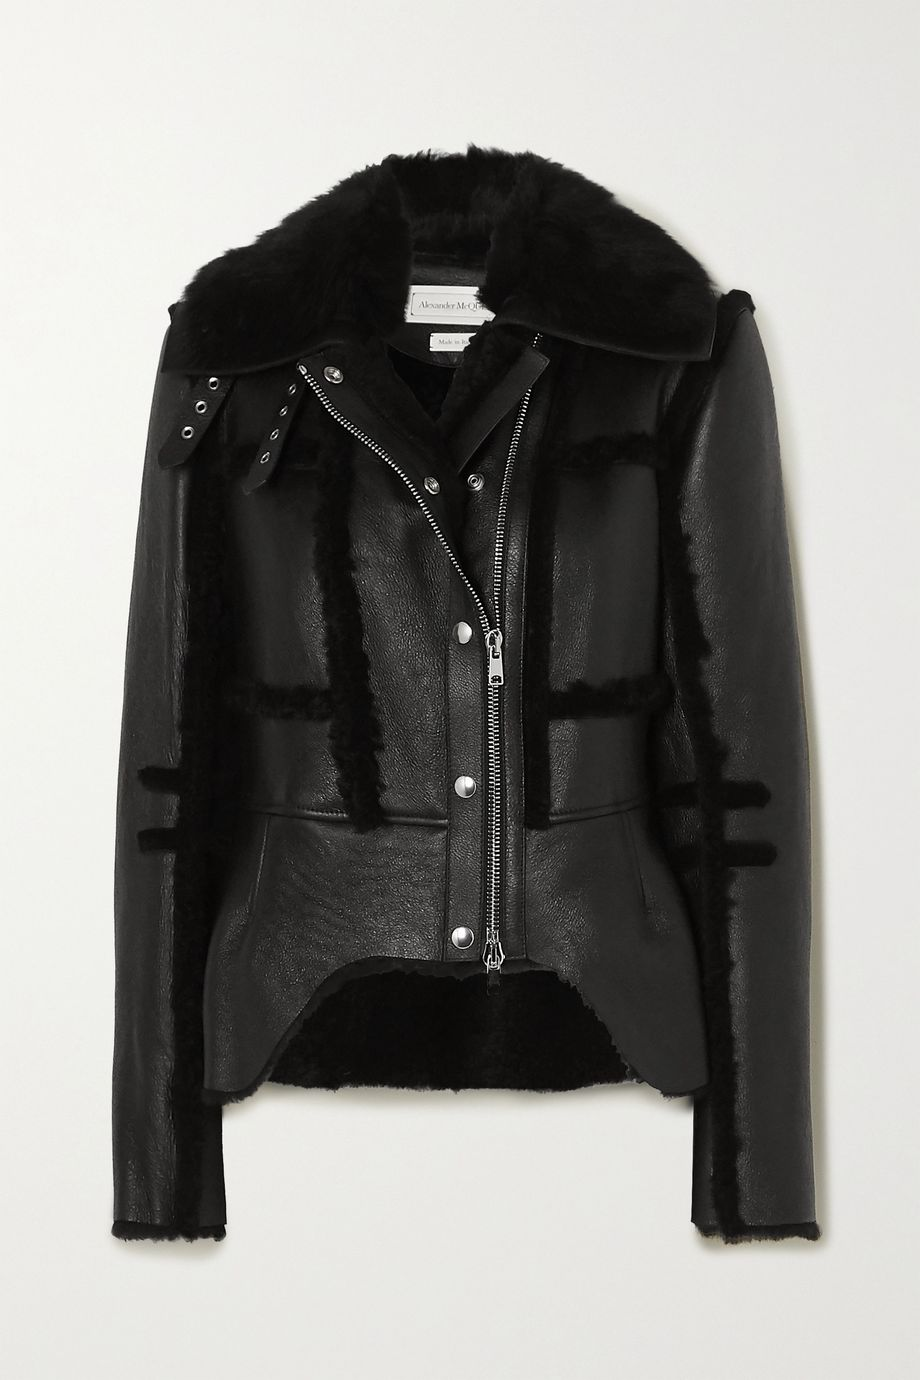 Alexander McQueen Shearling-trimmed leather biker jacket